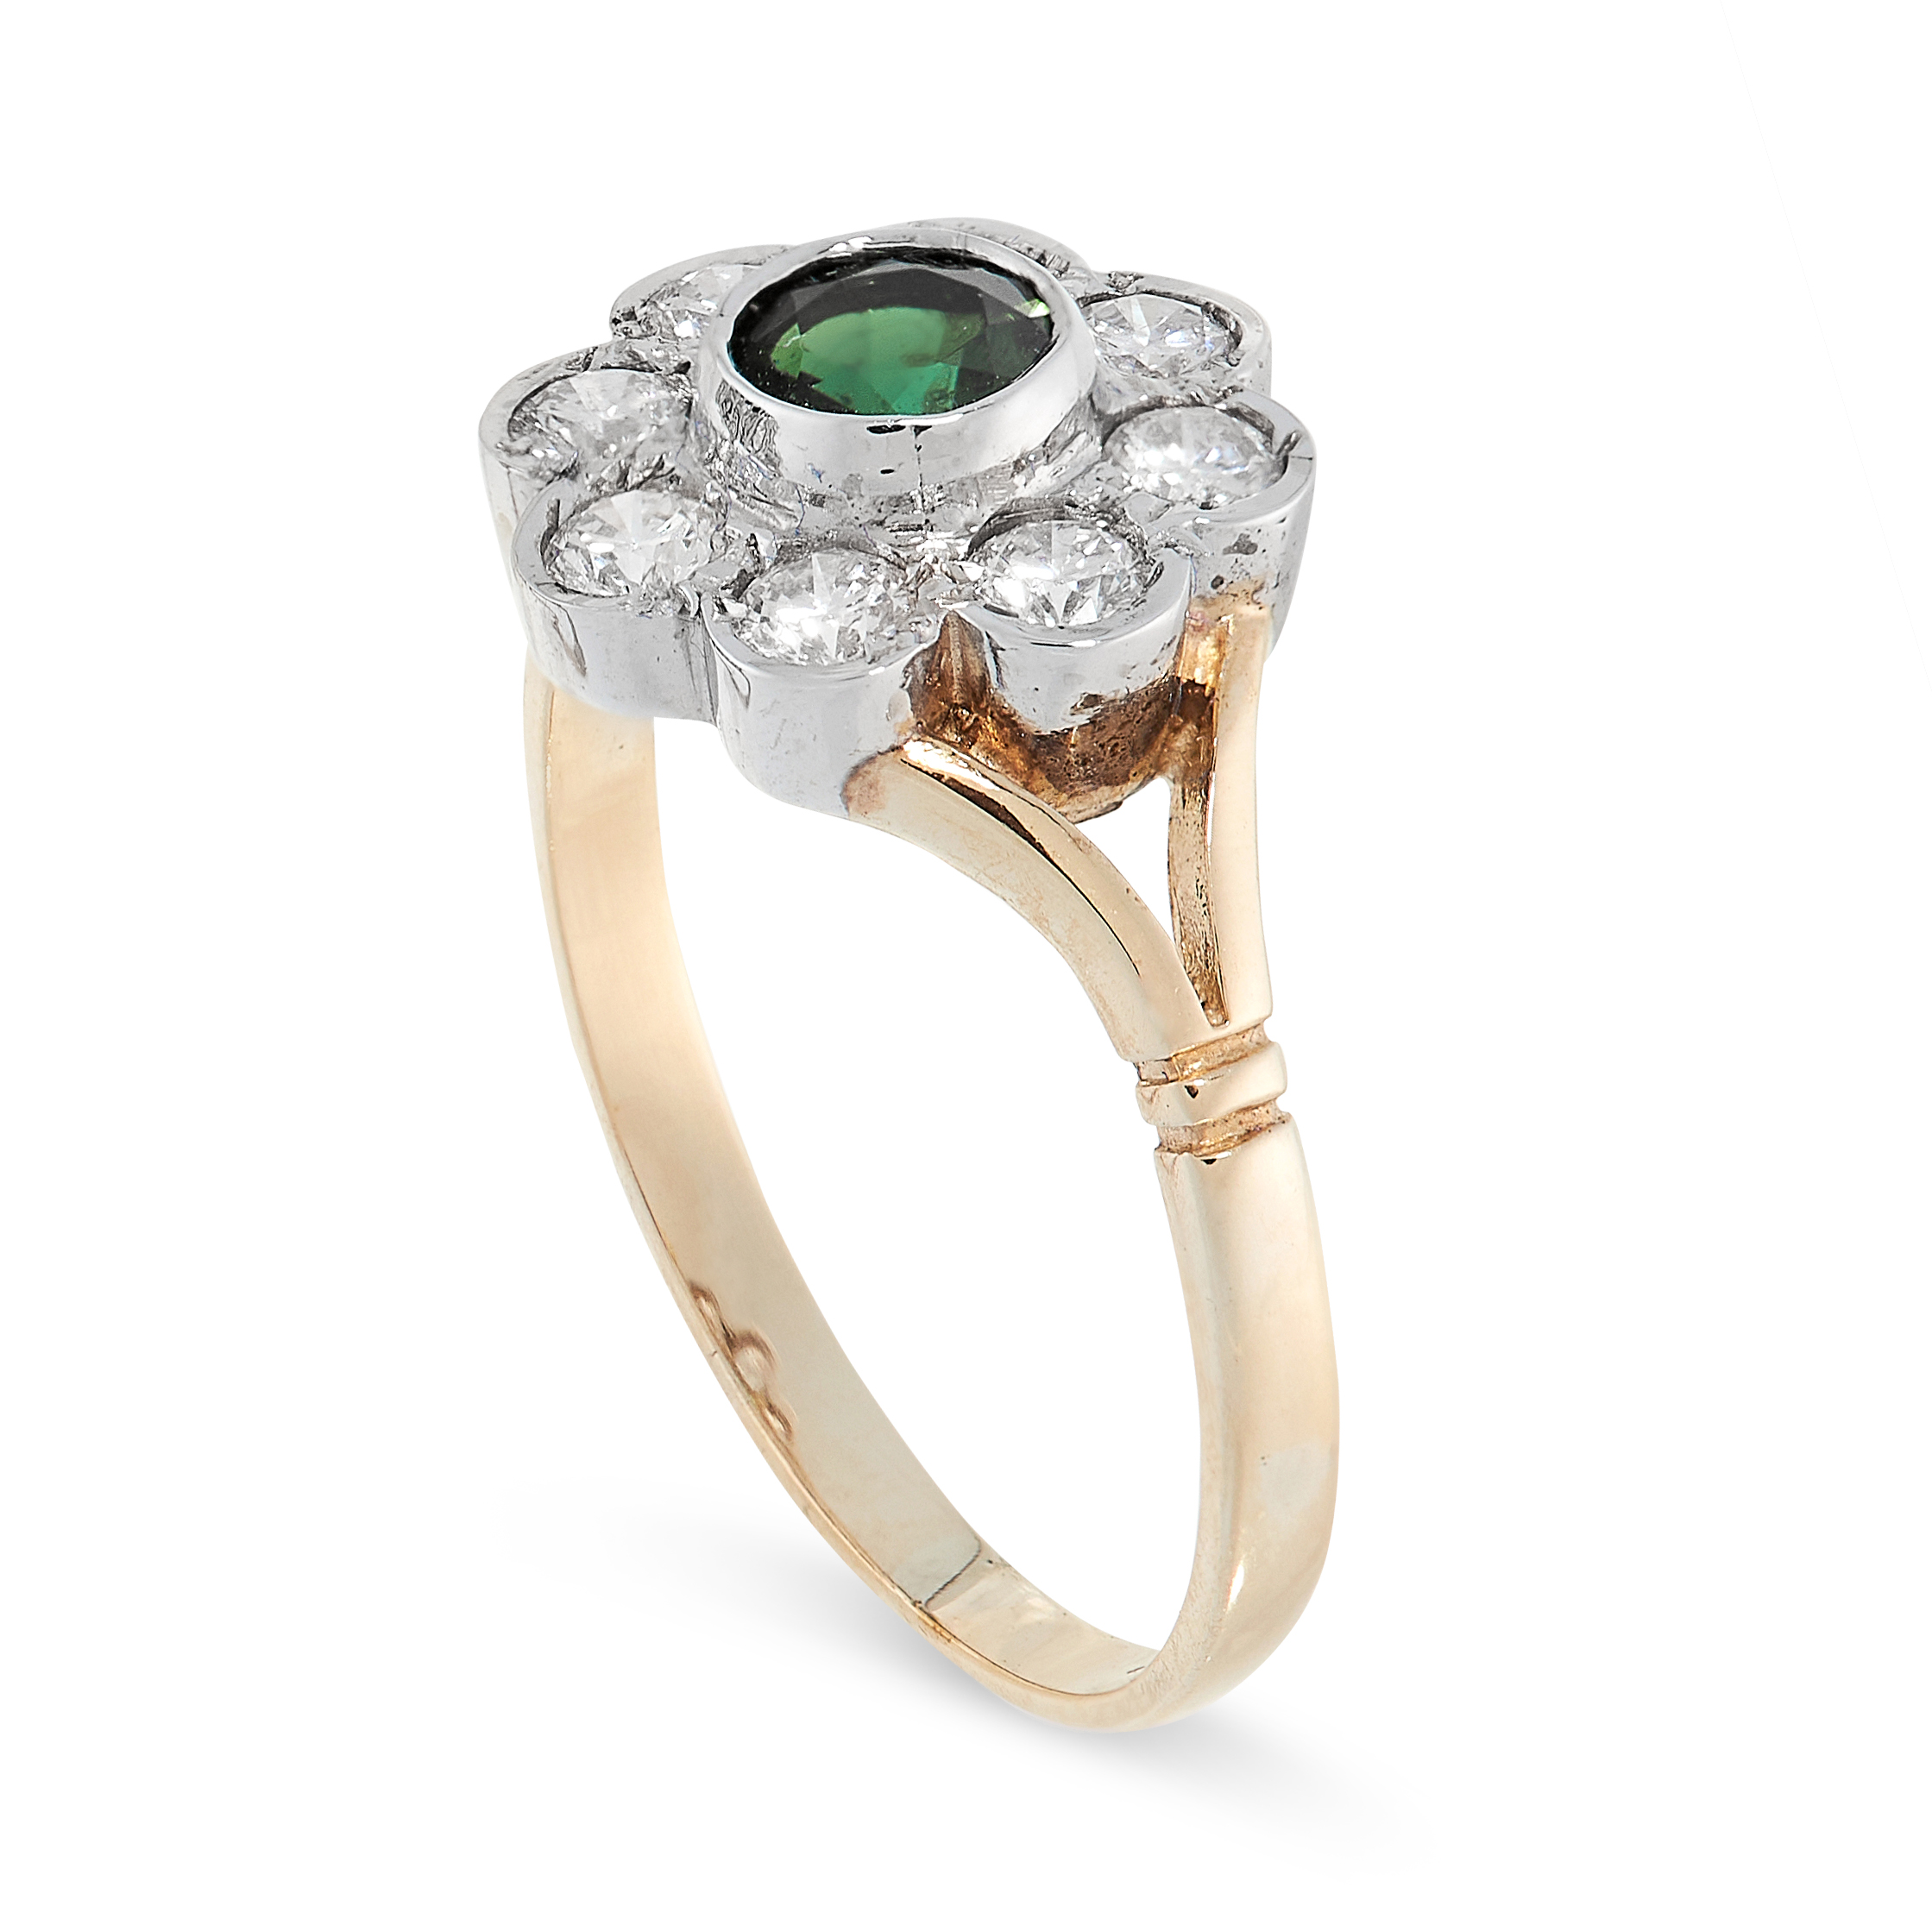 GREEN TOURMALINE AND DIAMOND RING in yellow gold, in cluster form, set with a round cut tourmaline - Image 2 of 2